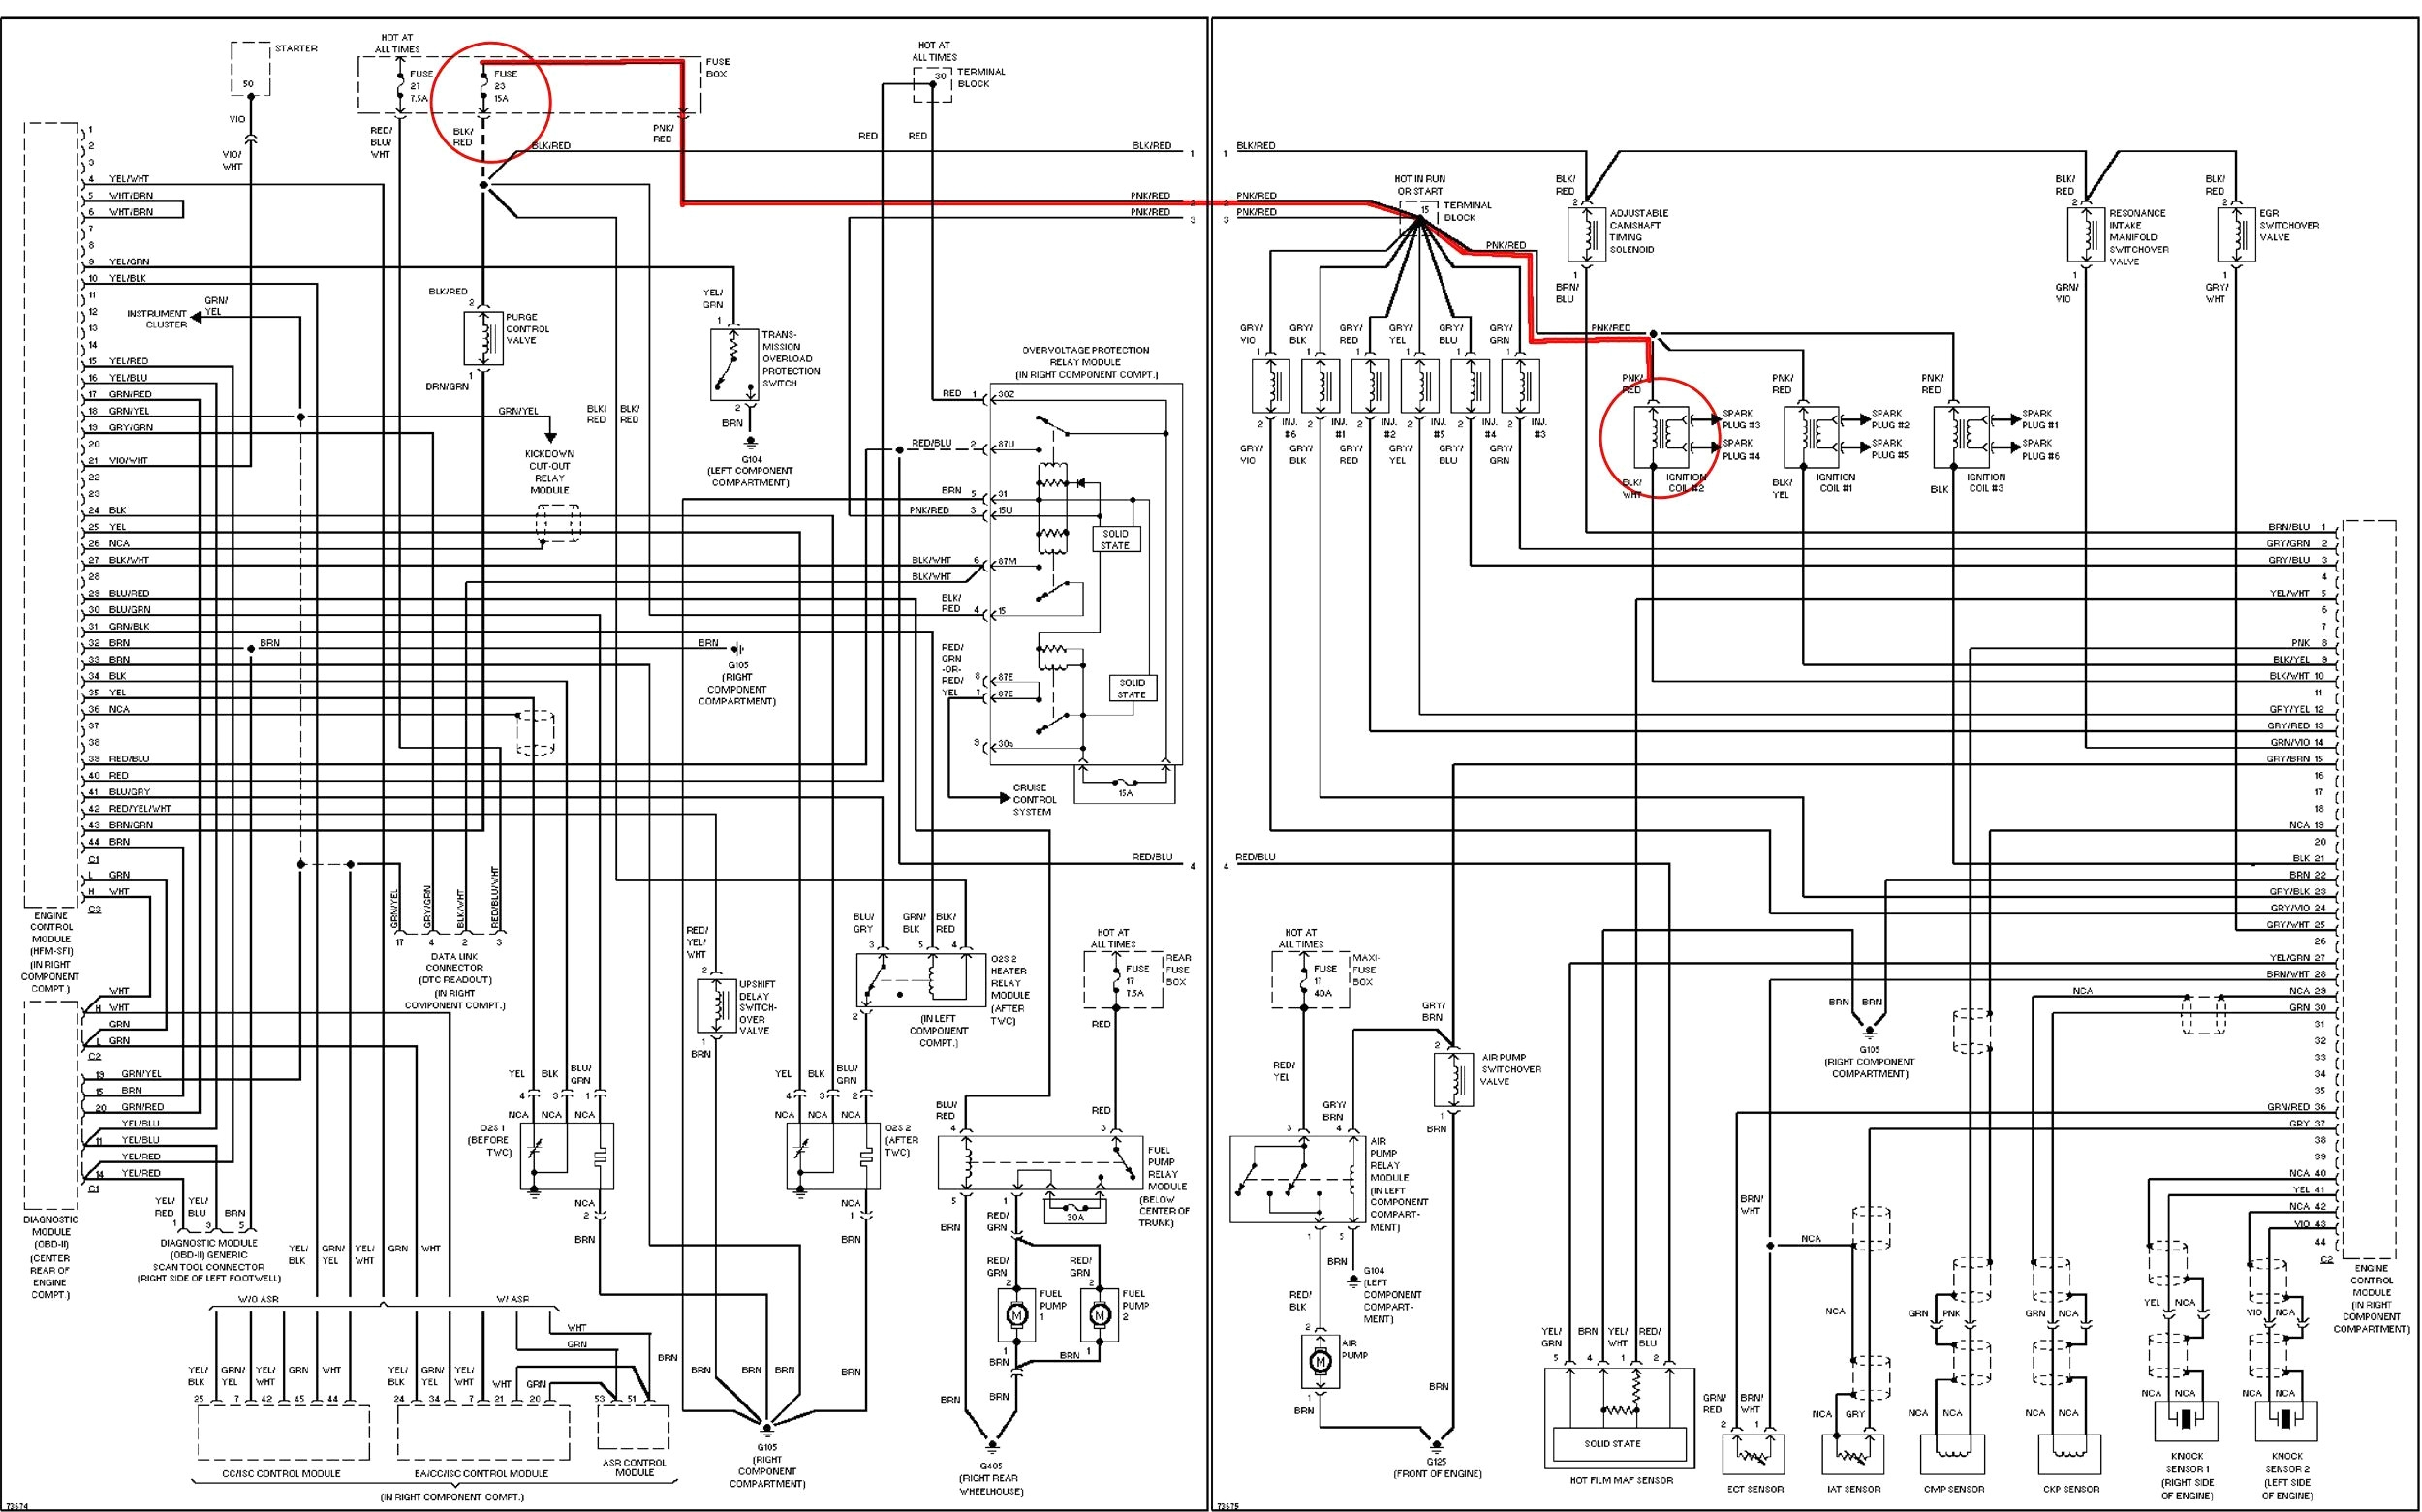 sprinter ambulance wiring diagram